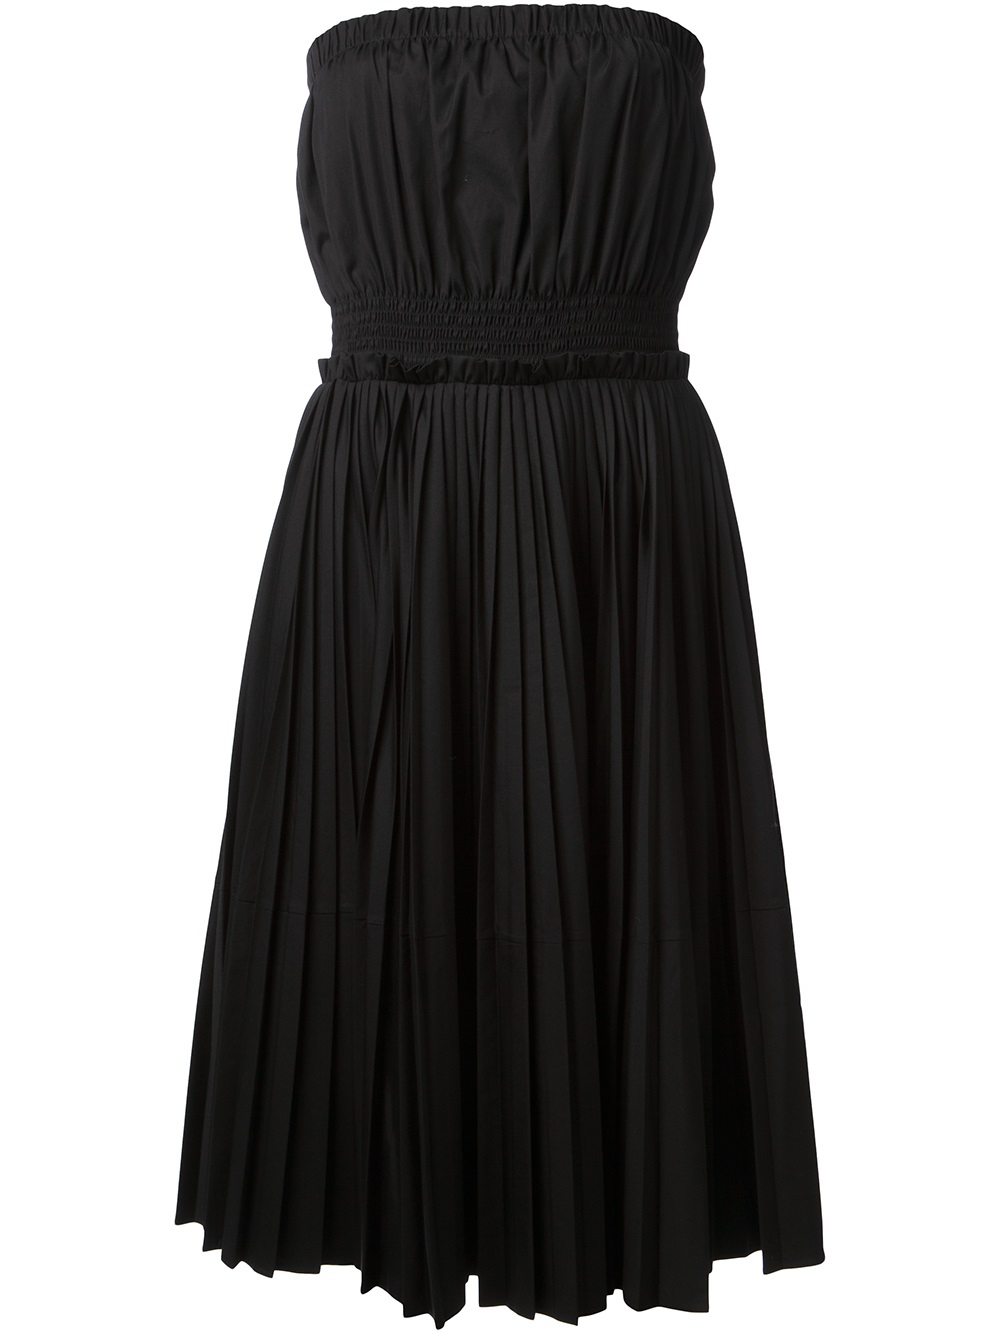 Givenchy Pleated Strapless Dress in Black | Lyst